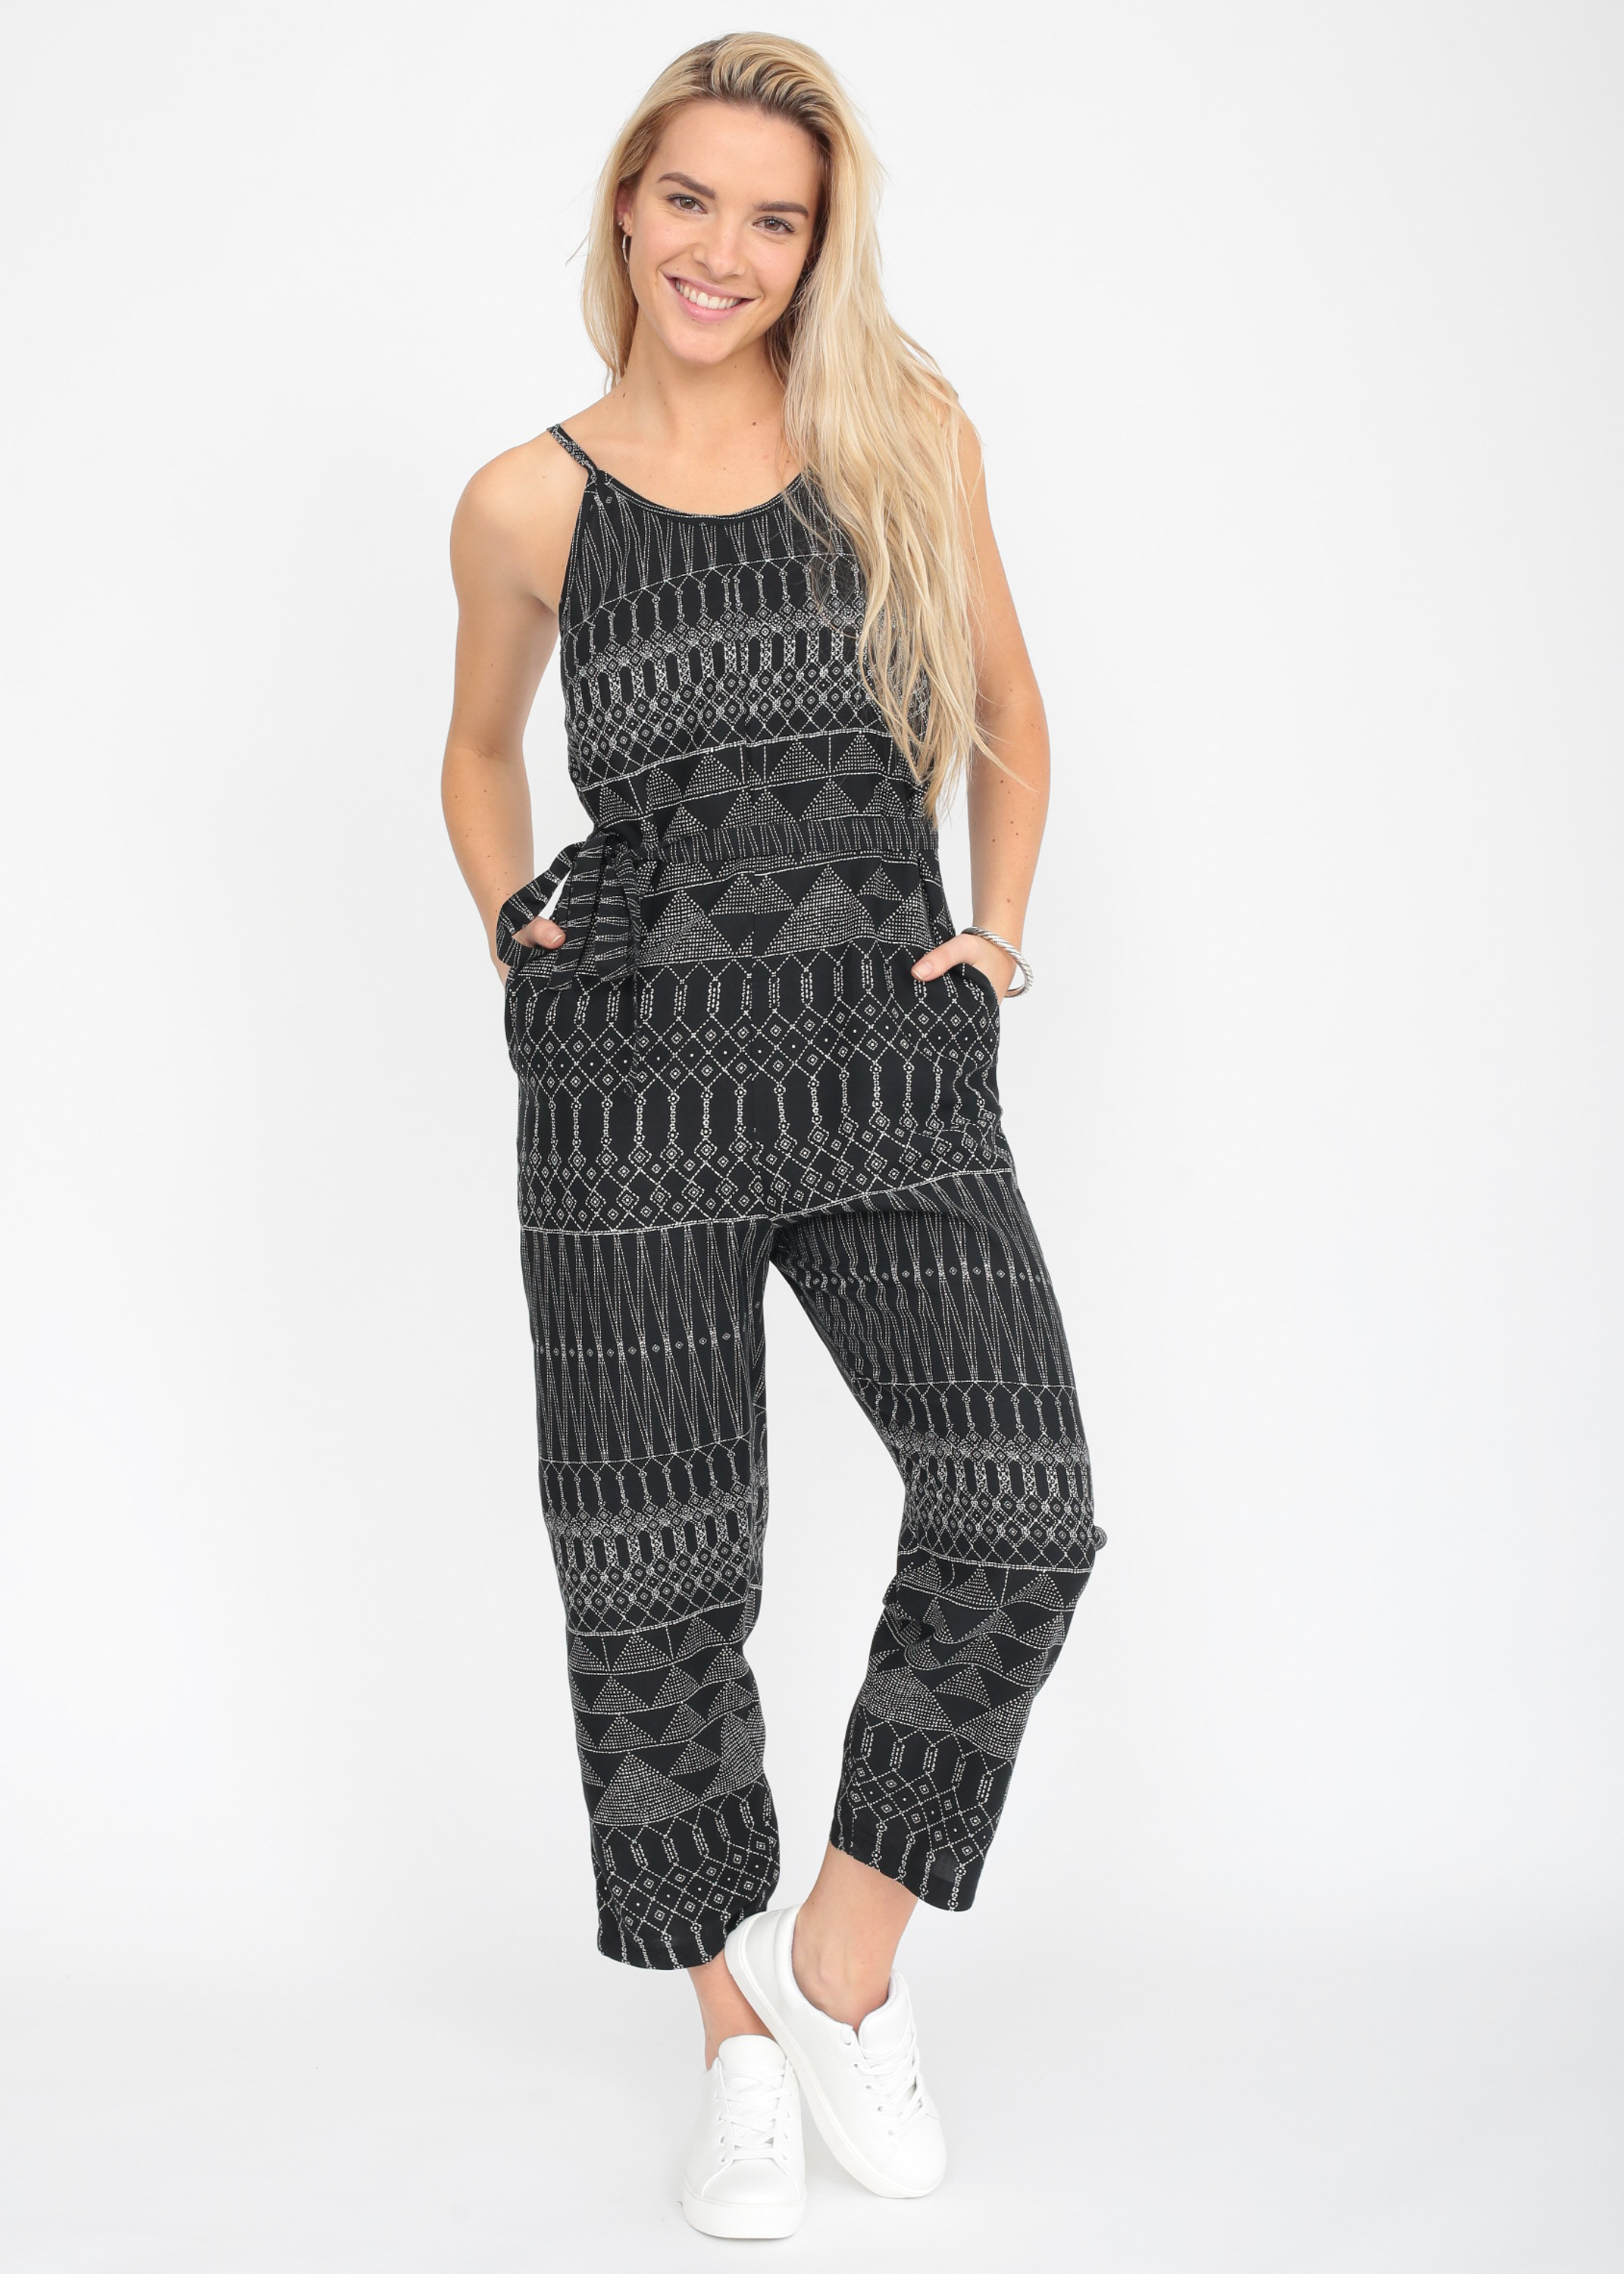 d362ecff086f Relaxed Strappy Printed Romper Jumpsuit – likemary